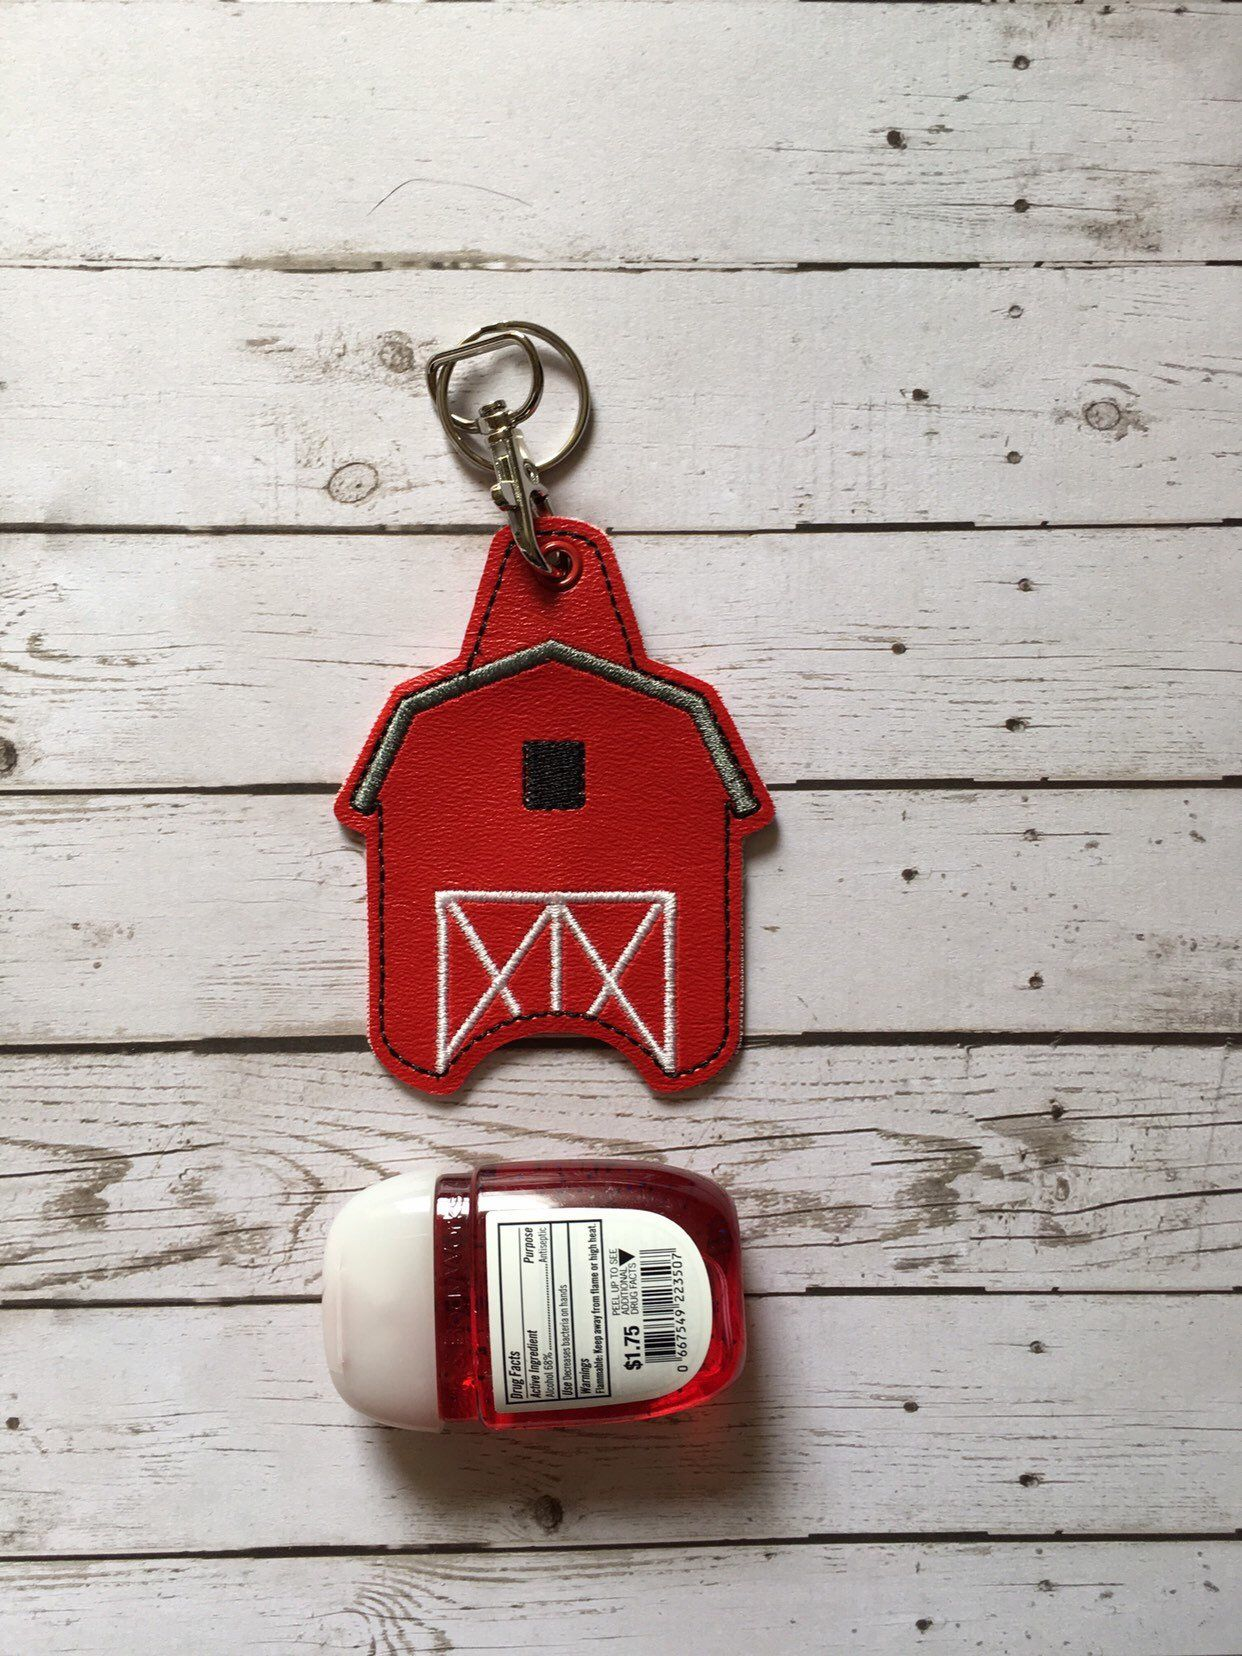 Barn Hand Sanitizer Holder Keychain Hand Sanitizer Key Fob 1